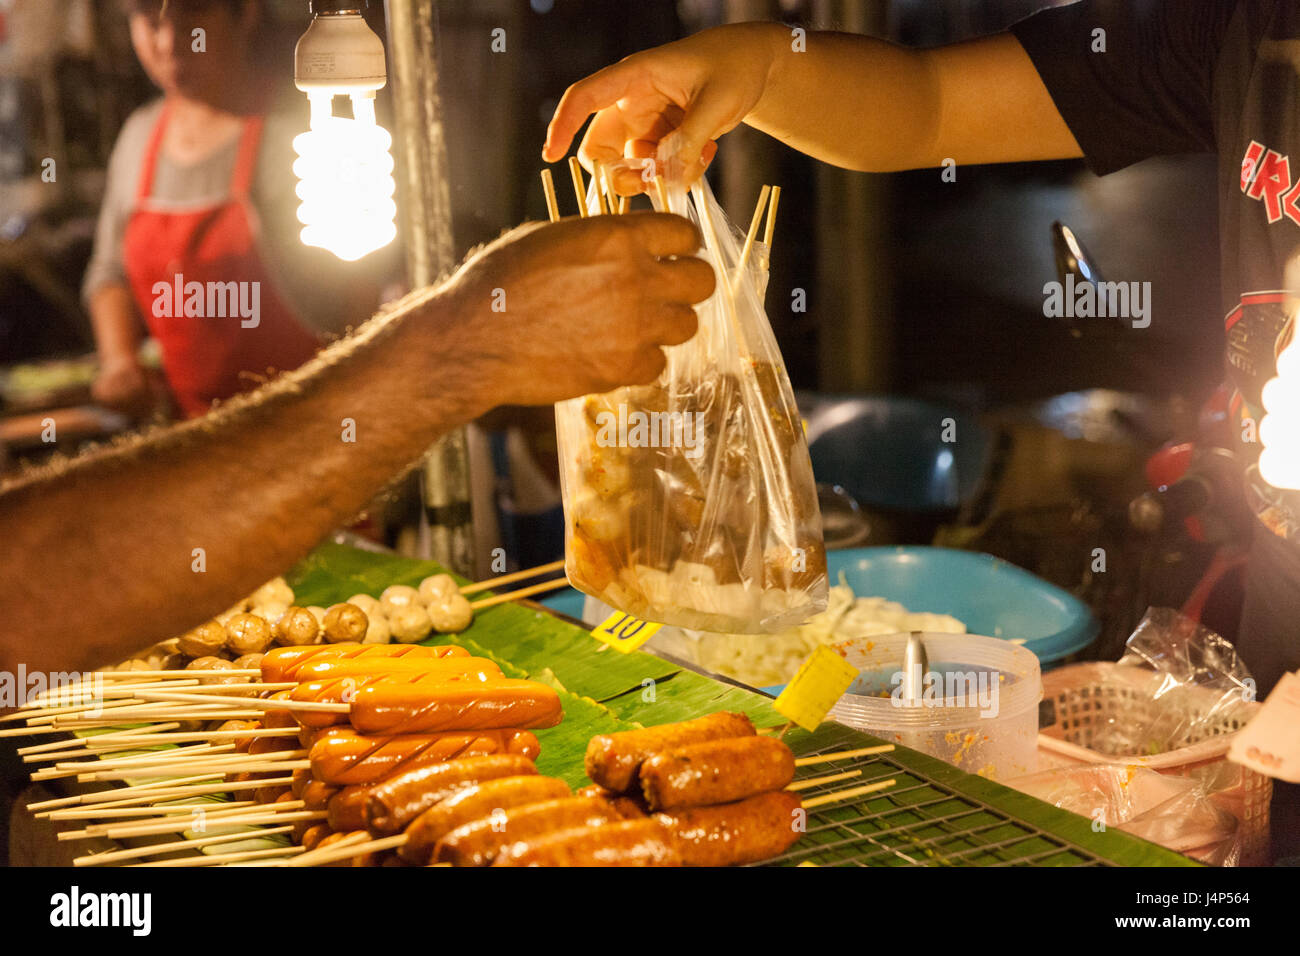 CHIANG MAI, THAILAND - AUGUST 21: Man buys meatballs at the Sunday Market (Walking Street) on August 21, 2016 in - Stock Image